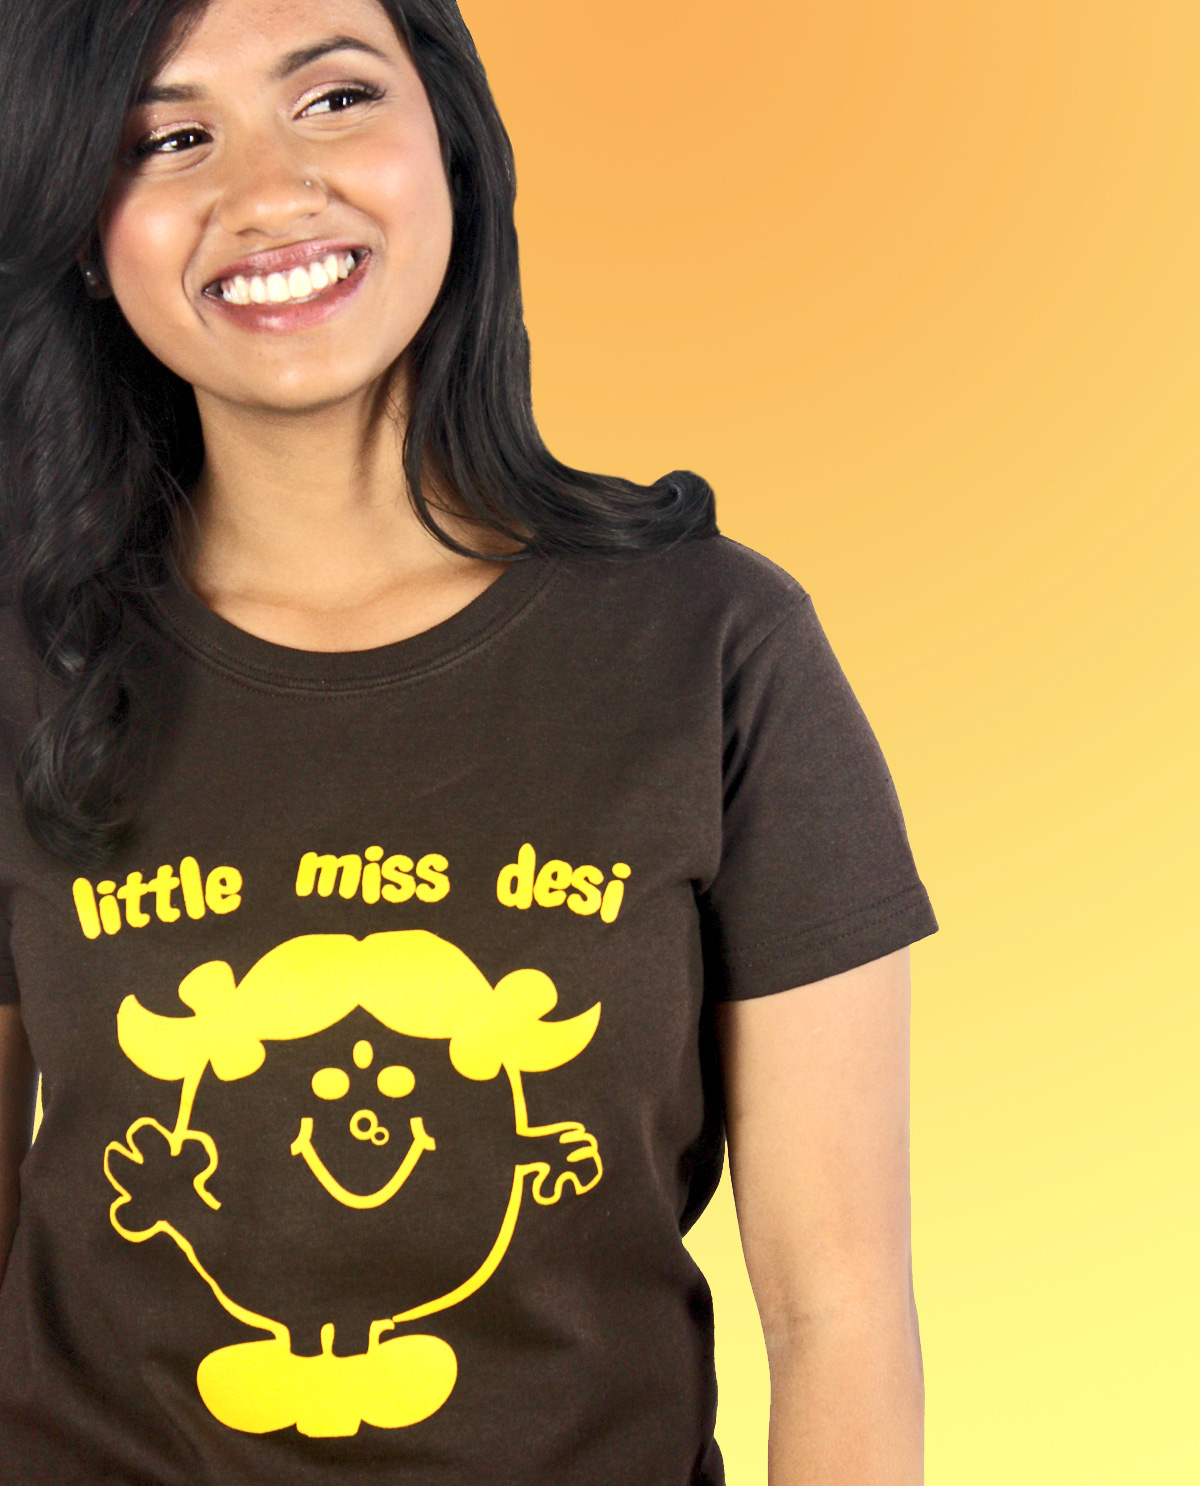 South Asian Female Model wearing Graphic Design T.shirt with Little Miss Desi graphic design on front.